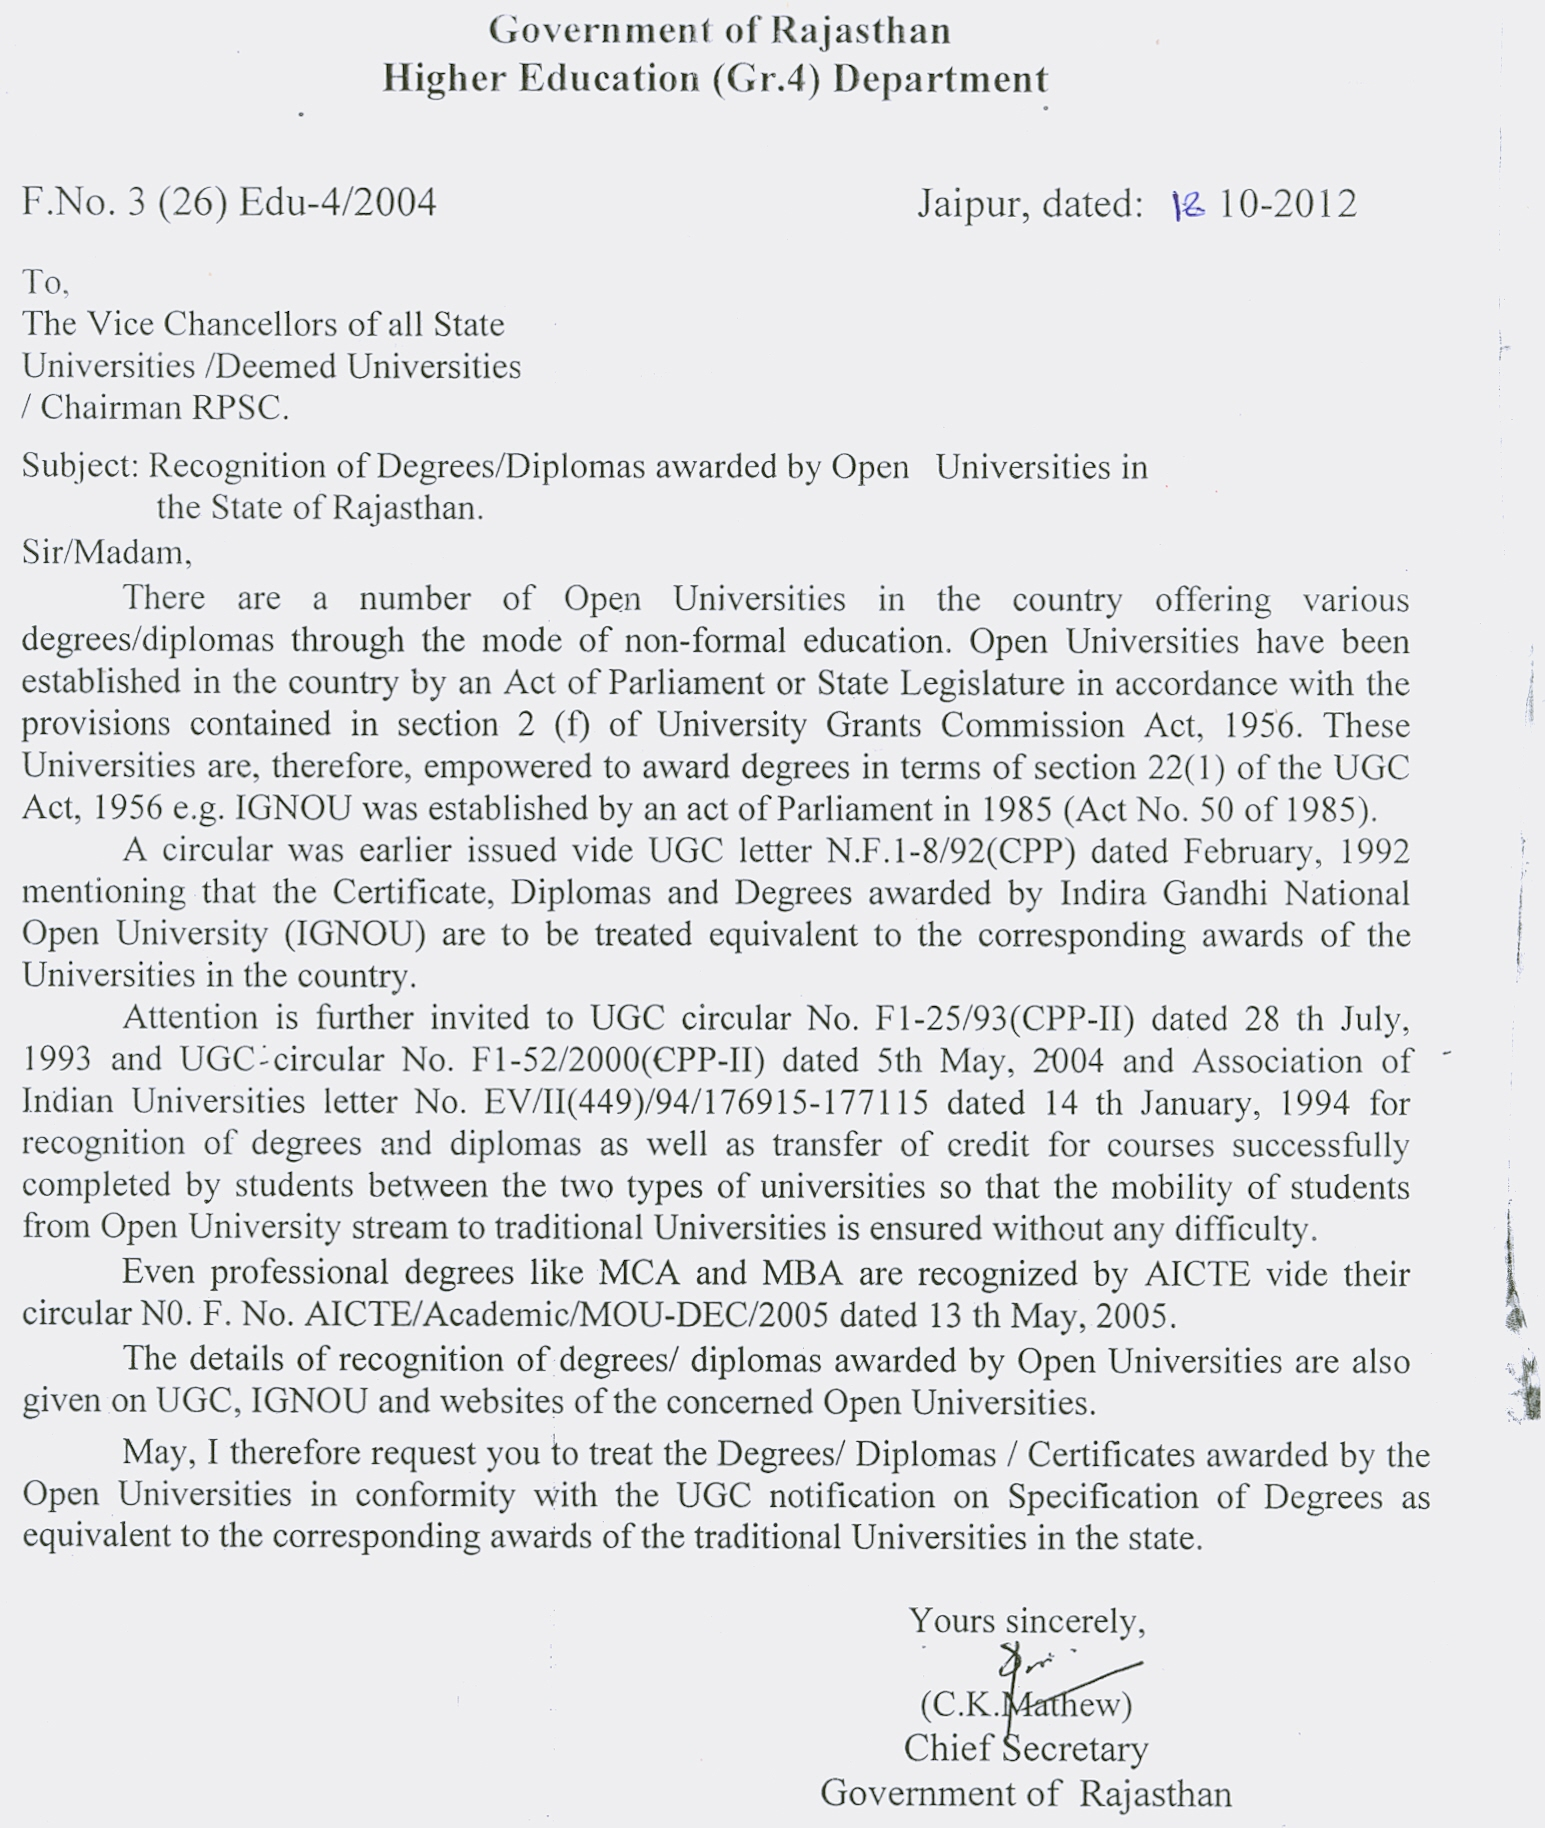 ignou student registration division srd what s new govt of rajasthan order dated 18 10 2012 regarding recognition of degrees diplomas awarded by ignou